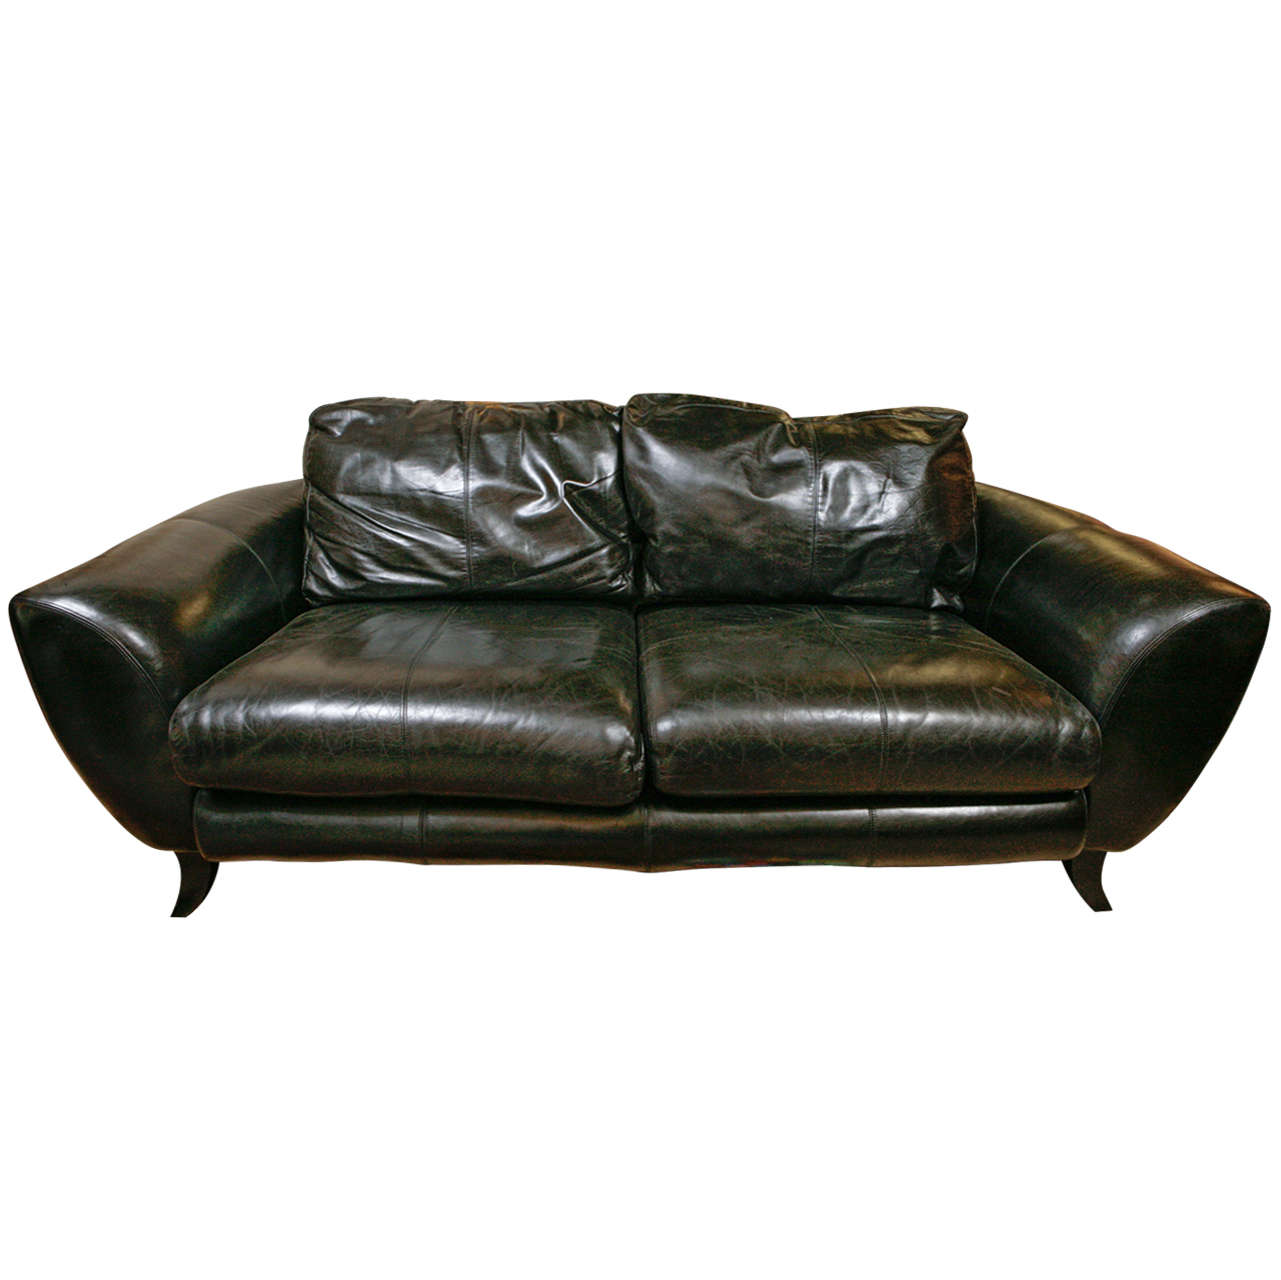 drexel heritage sofa prices bliss leather and loveseat set vintage black by at 1stdibs